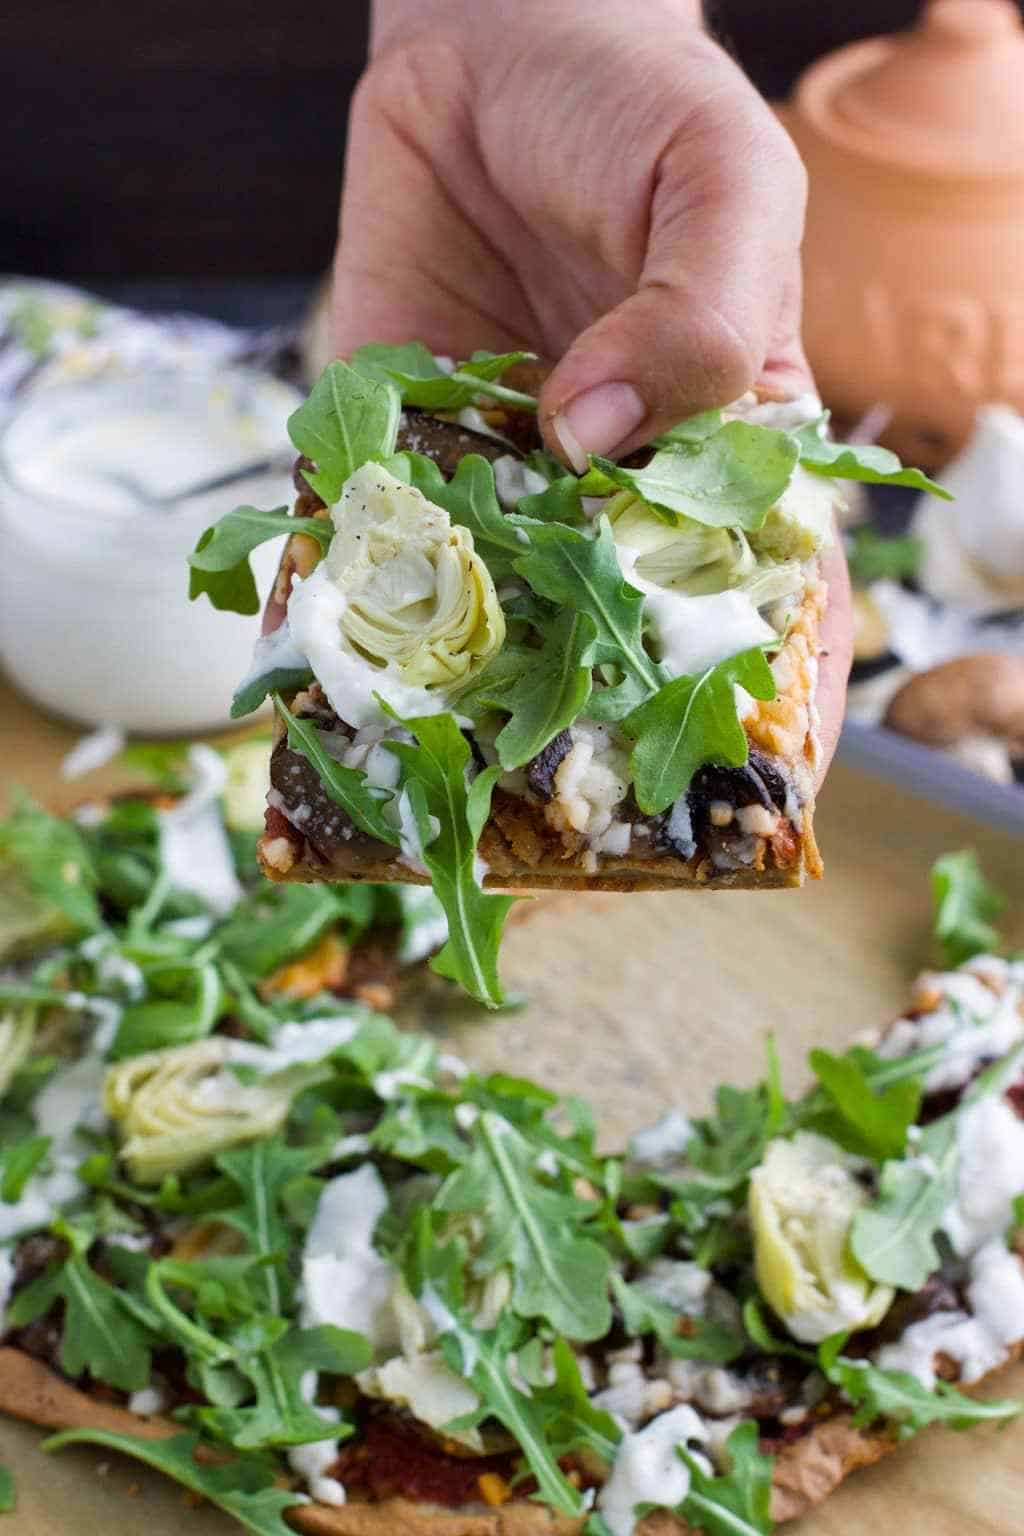 Sheet pan quinoa pizza crust